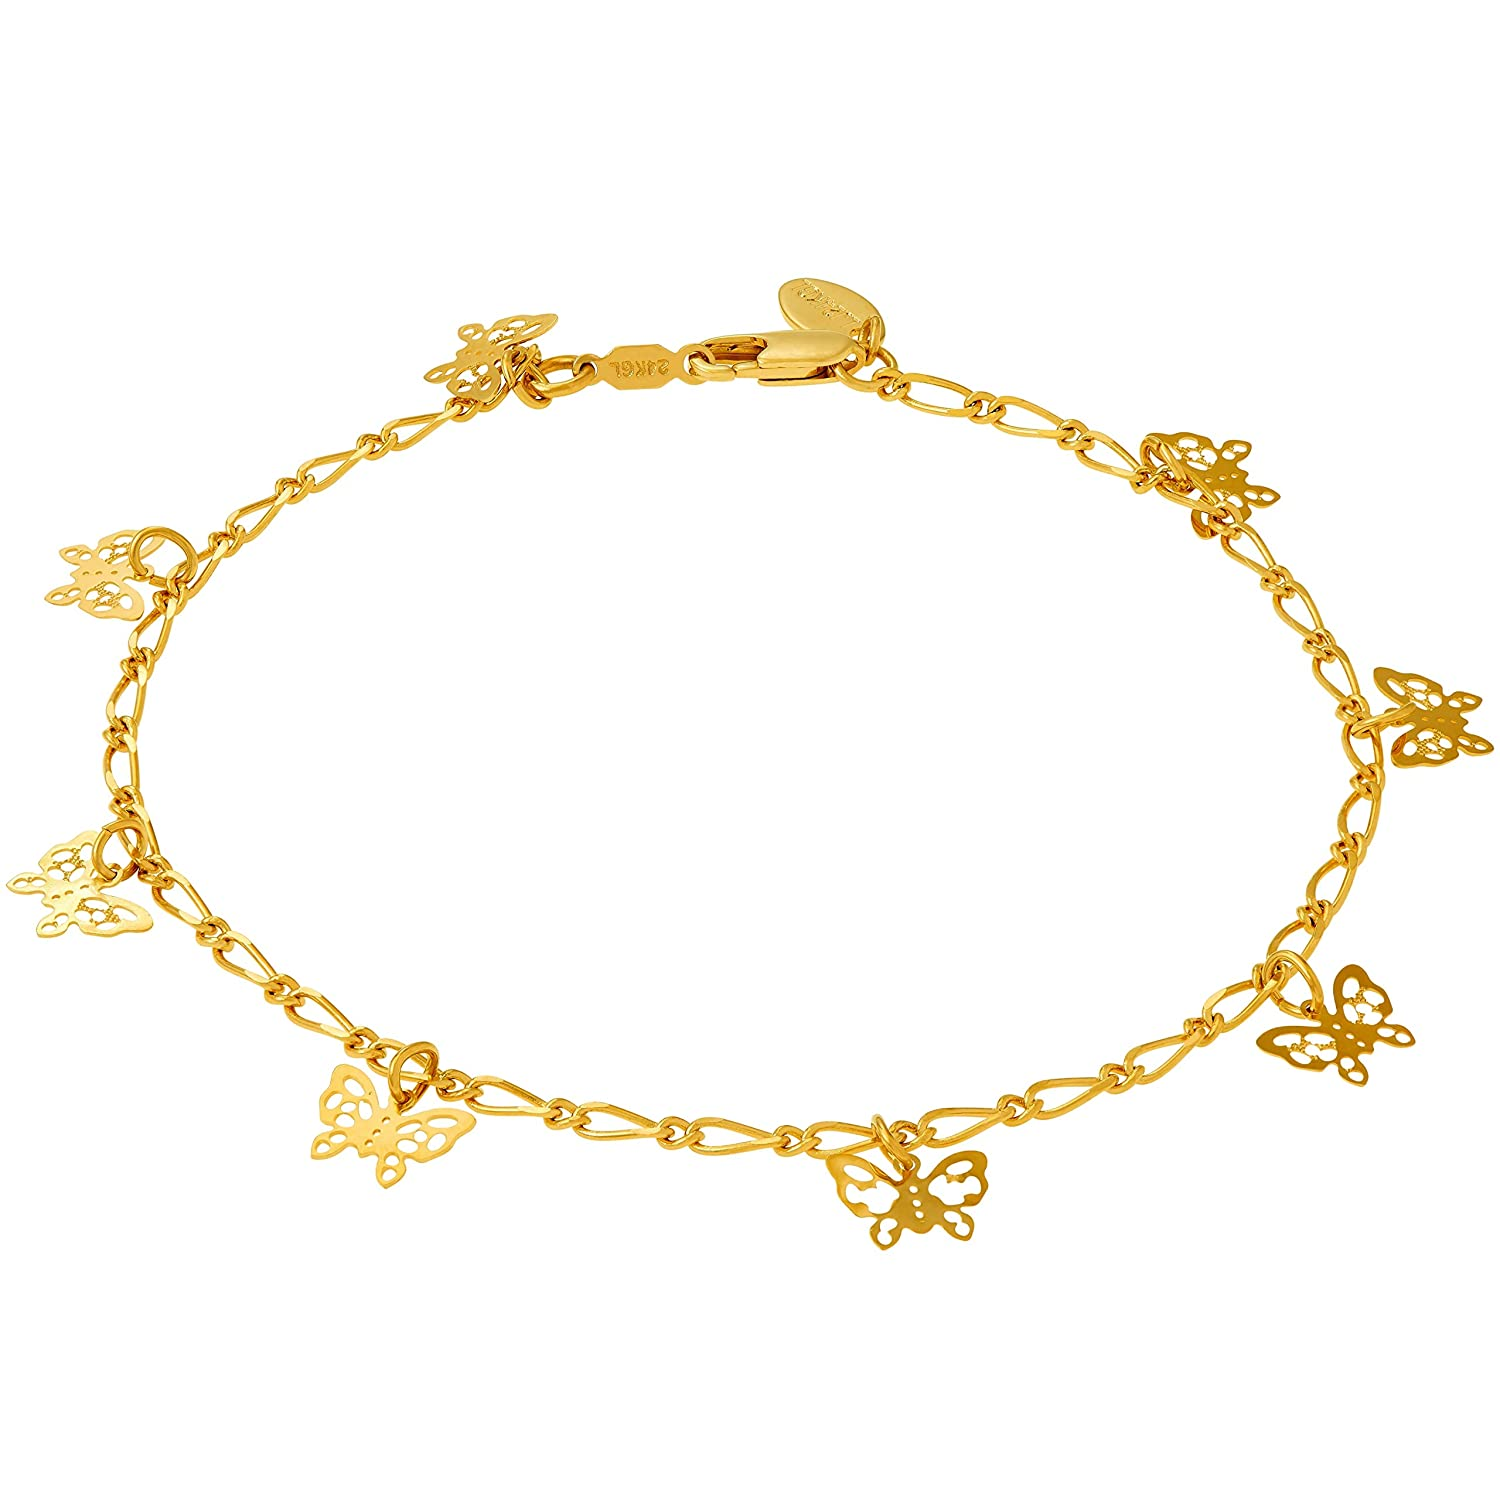 Lifetime Jewelry Butterfly Ankle Bracelet for Women and Teen Girls - 24K Real Gold Plated Cute Durable Anklet - Wear to Beach or Party - Made in USA 9 10 and 11 inches Lifetime Products Group 153